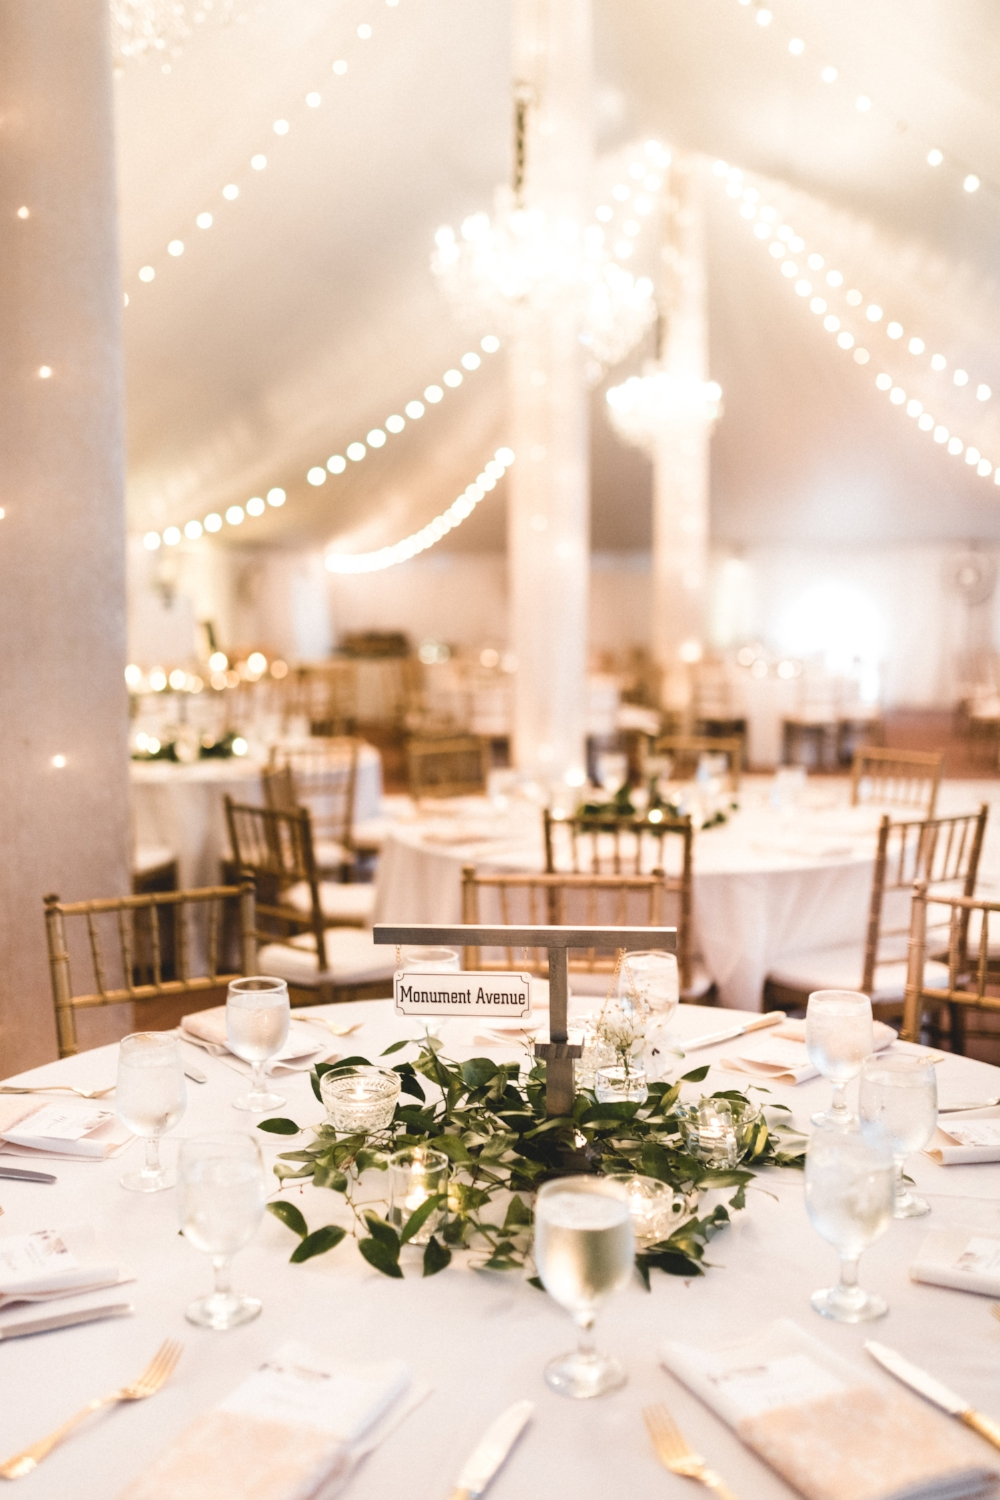 The perfect tablescape! Simple, elegant, and completely original!